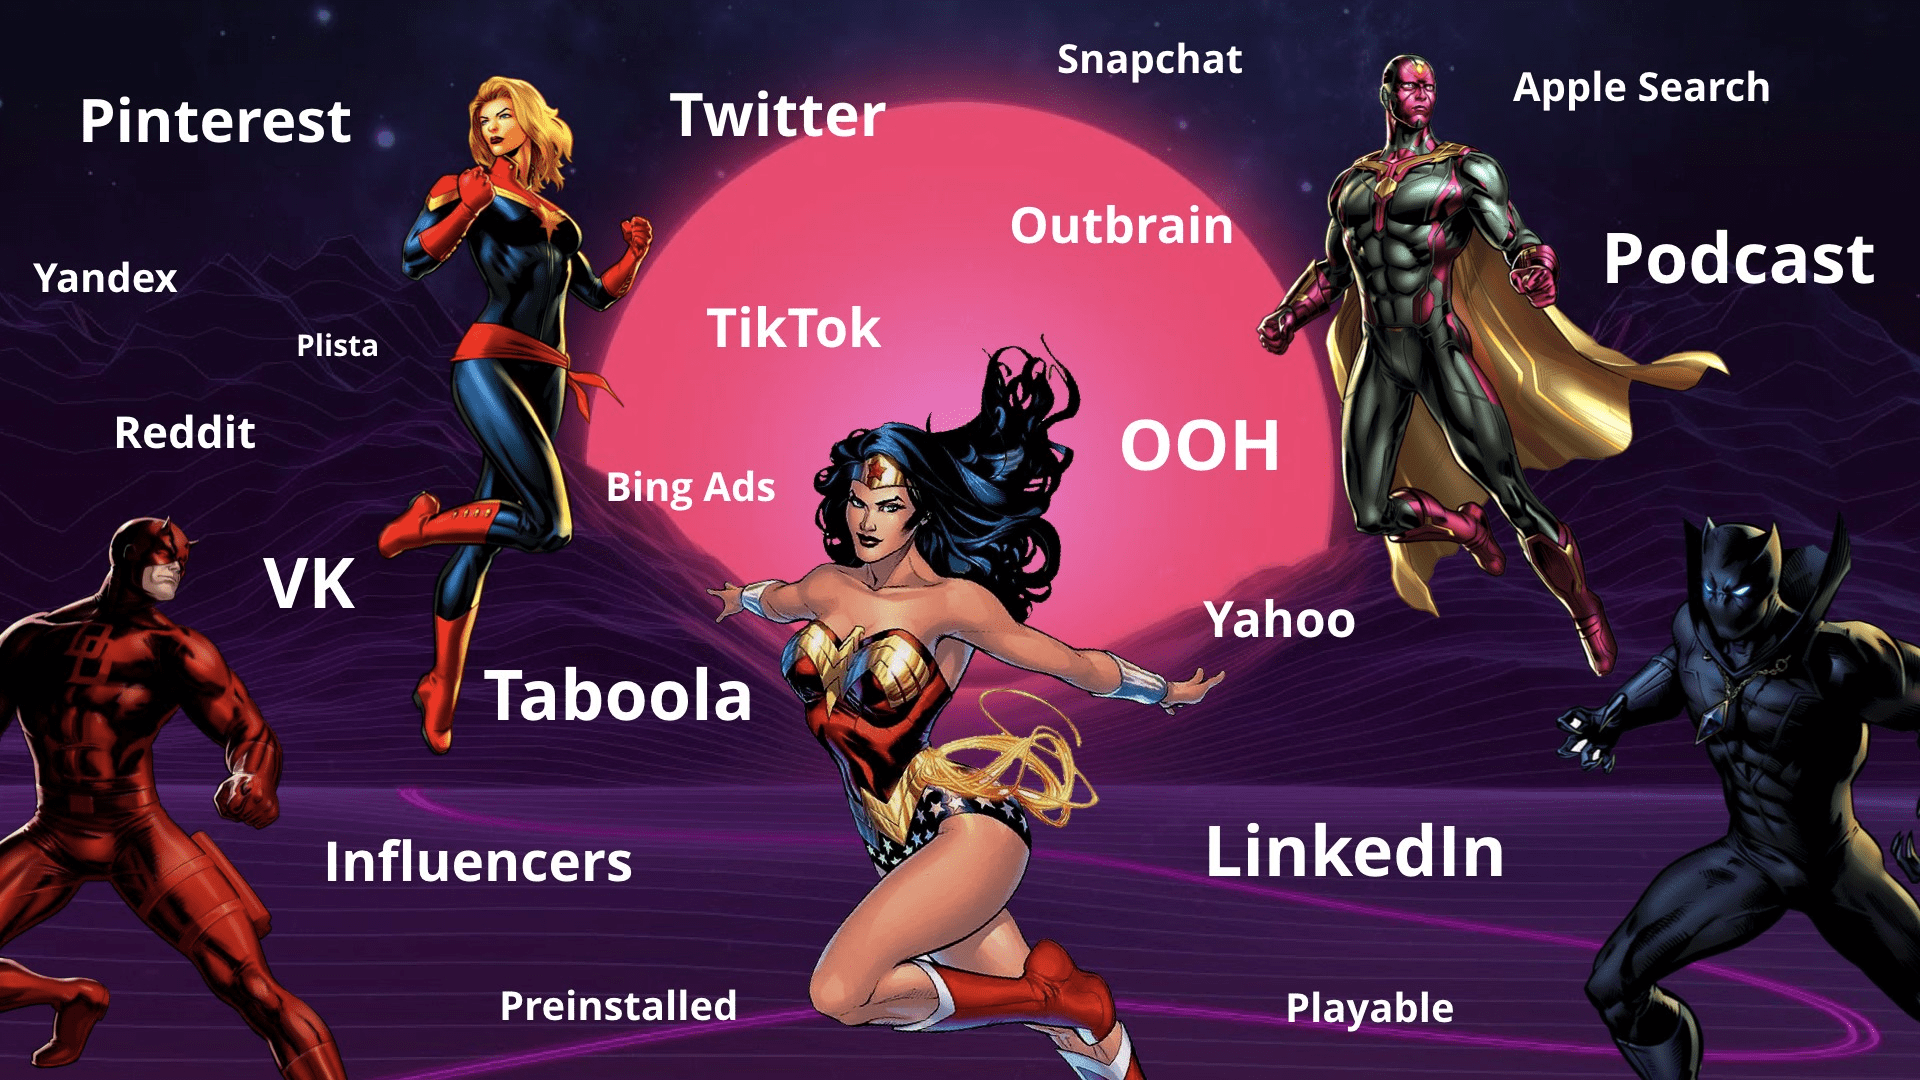 Think of each social media channel a bit like a superhero. They all have their strengths and weaknesses.